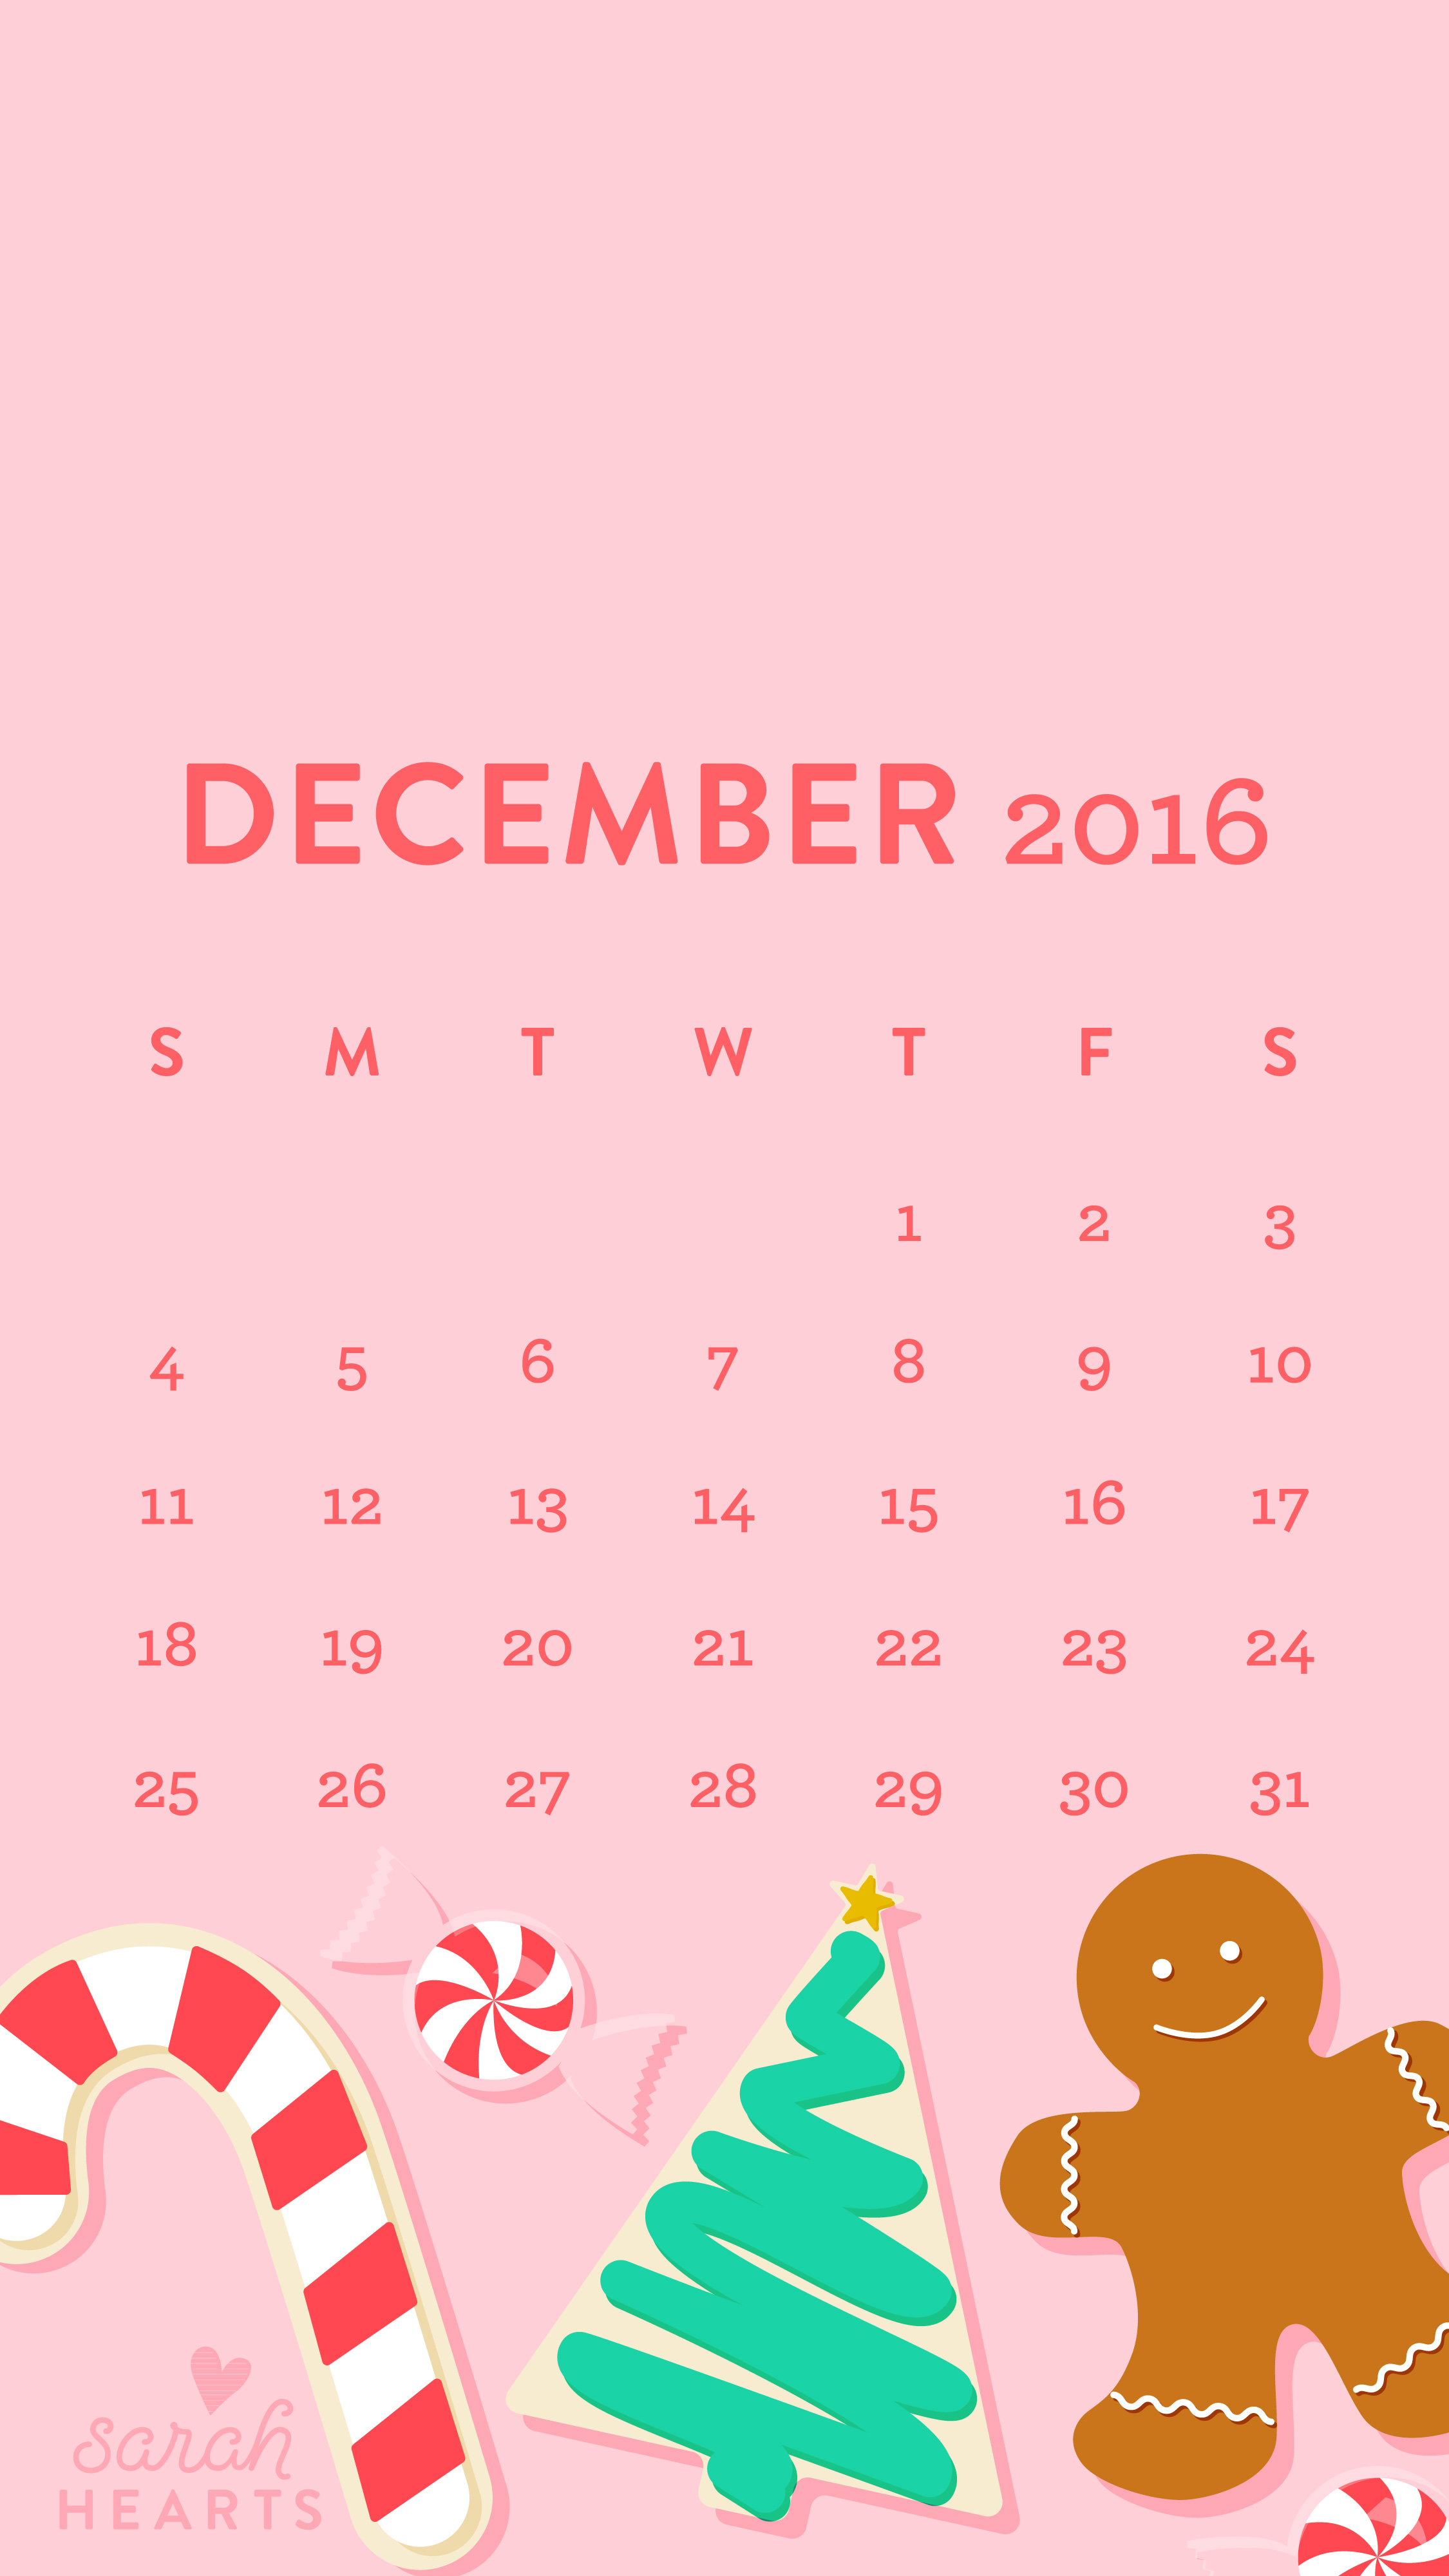 Cute Brand Wallpapers December 2016 Christmas Cookie Calendar Wallpaper Sarah